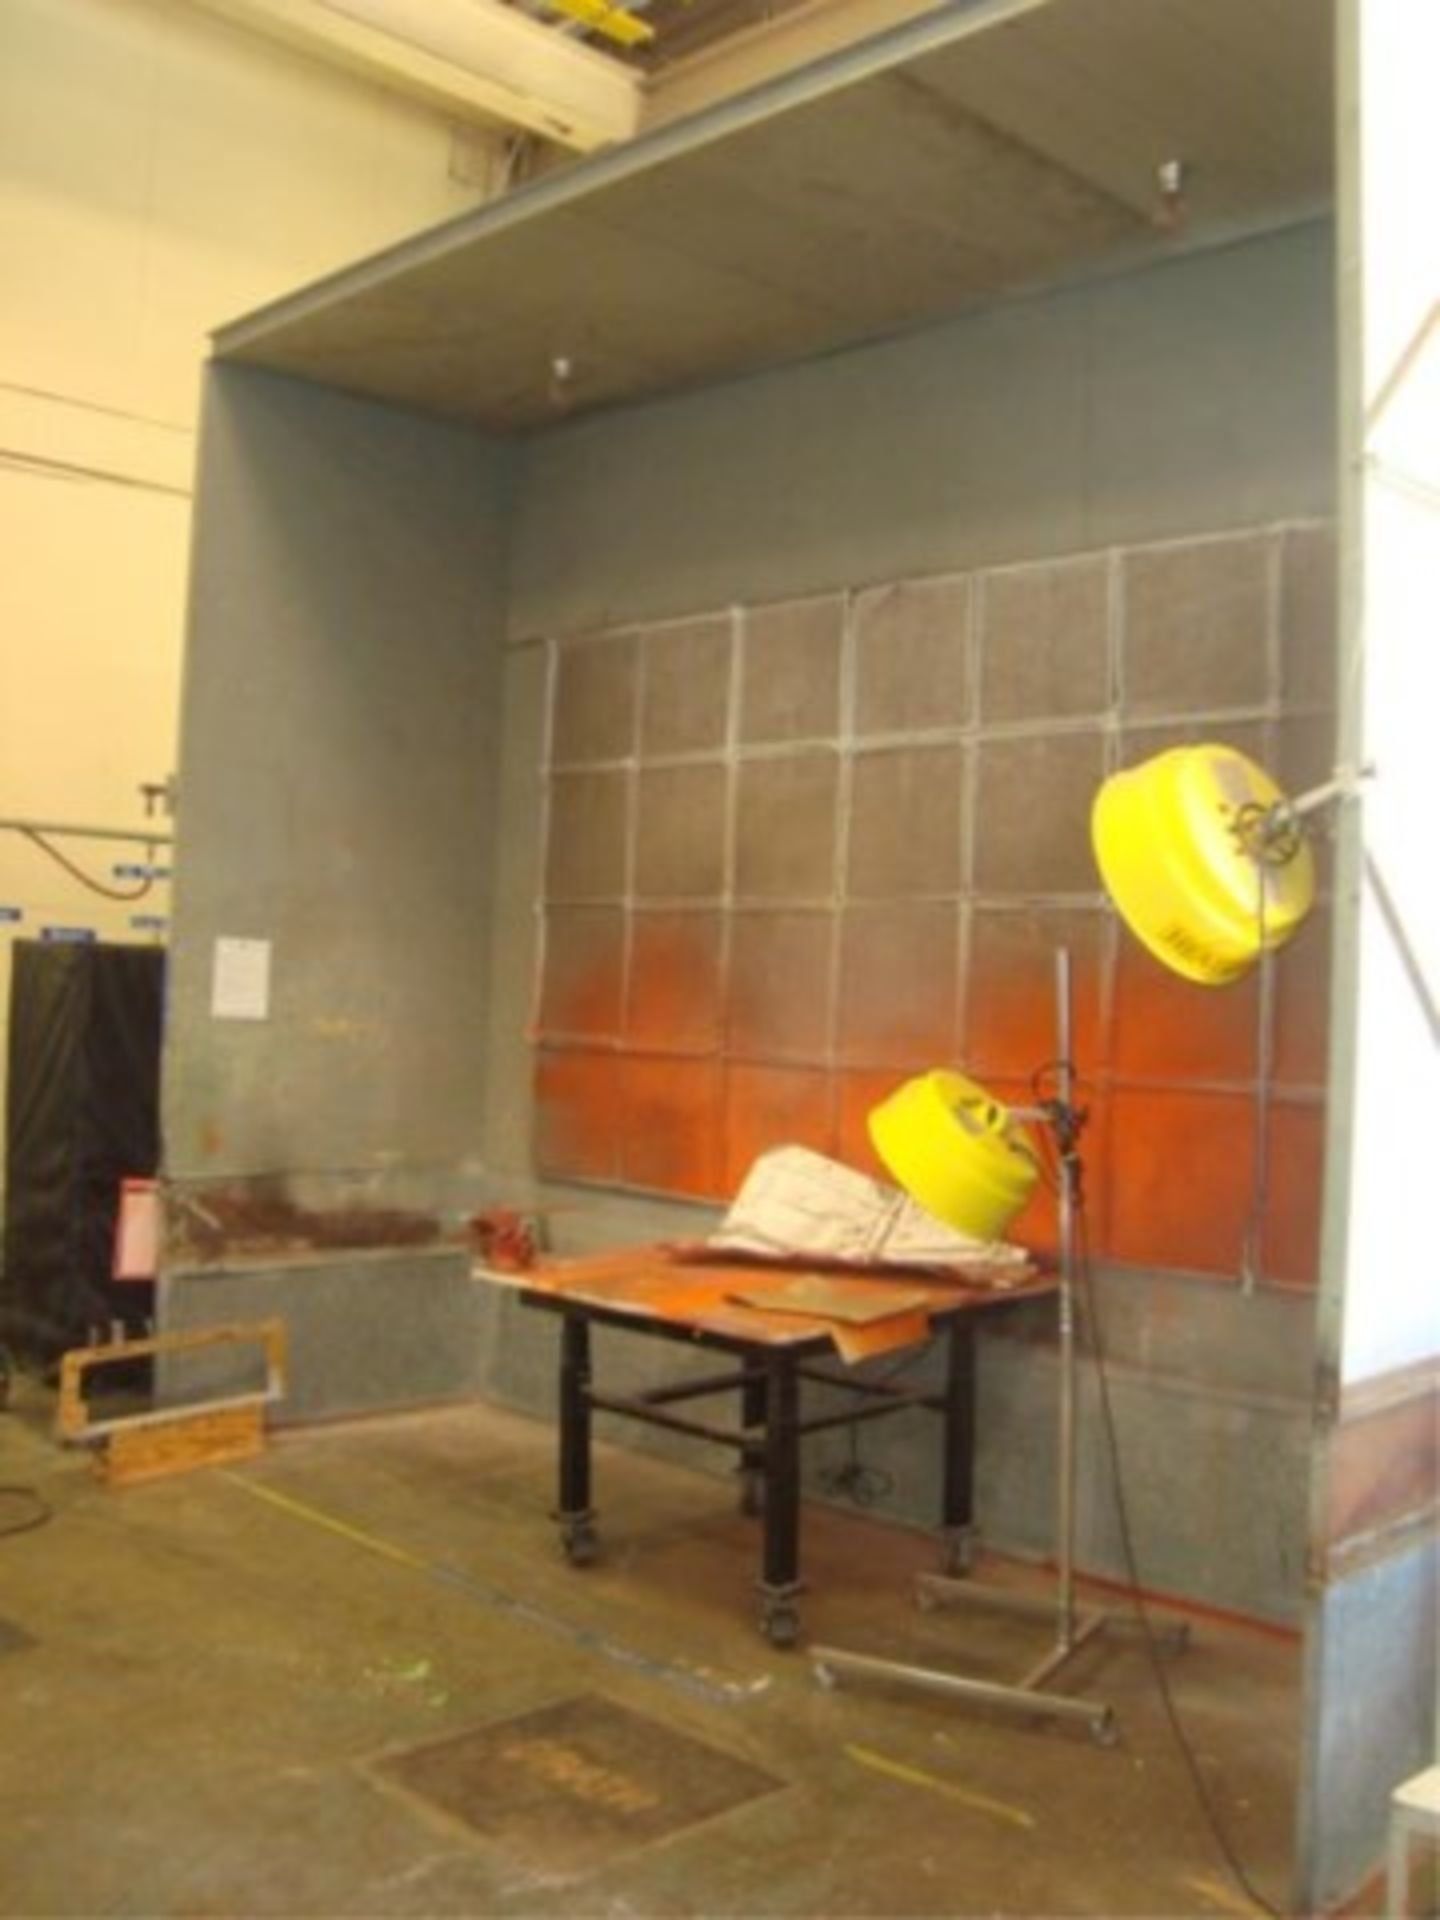 Lot 120 - Paint Spray Booth